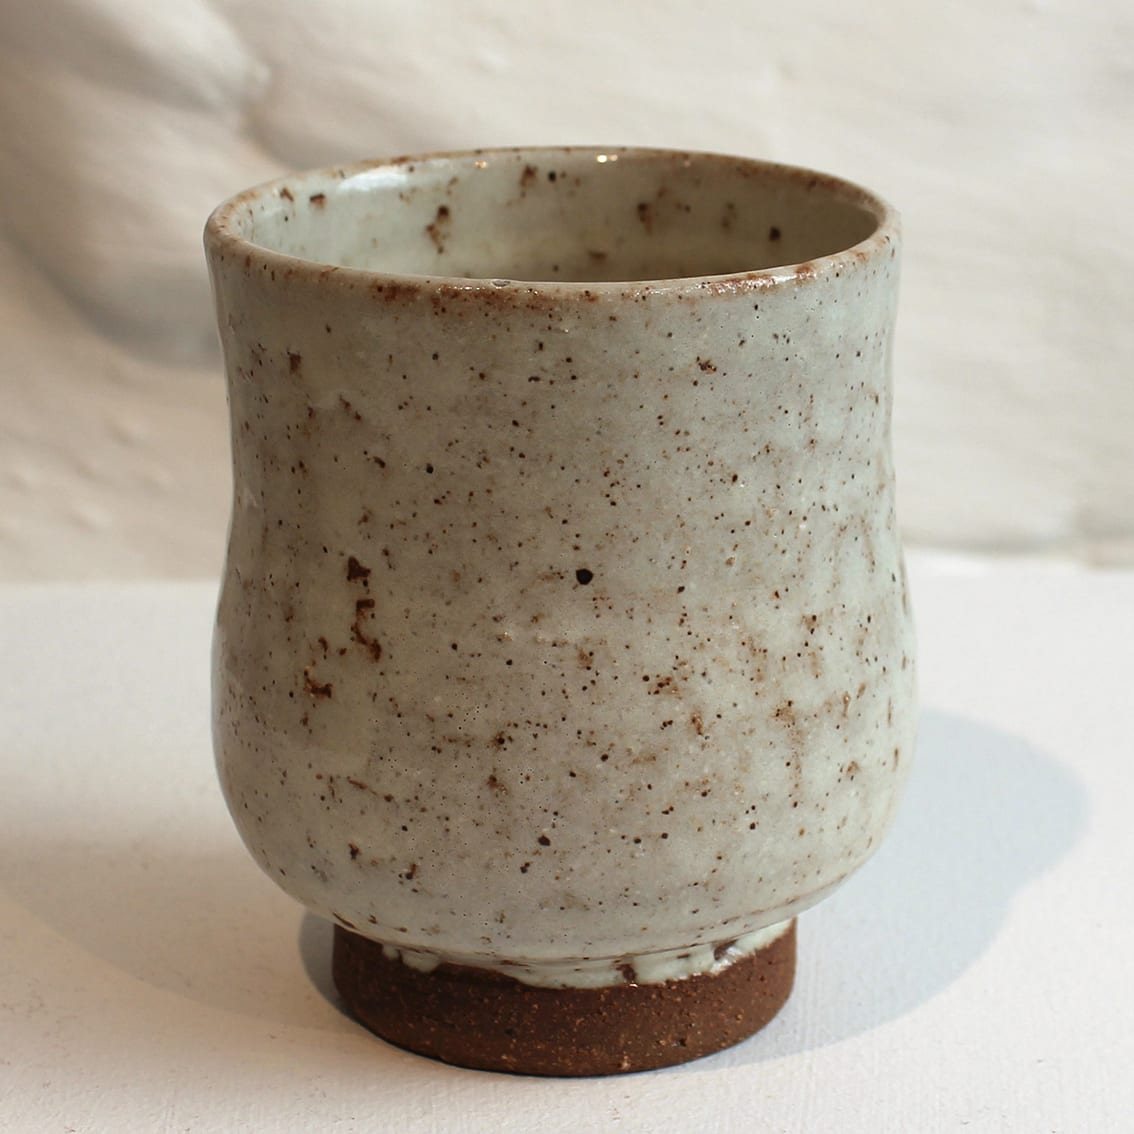 """<span class=""""link fancybox-details-link""""><a href=""""/artists/200-matthew-tyas/works/5460-matthew-tyas-tenmoku-ash-glaze-yunomi-2018/"""">View Detail Page</a></span><div class=""""artist""""><strong>Matthew Tyas</strong></div> <div class=""""title""""><em>Tenmoku Ash Glaze Yunomi</em>, 2018</div> <div class=""""signed_and_dated"""">stamped by the artist</div> <div class=""""medium"""">glazed thrown stoneware</div><div class=""""copyright_line"""">Copyright The Artist</div>"""